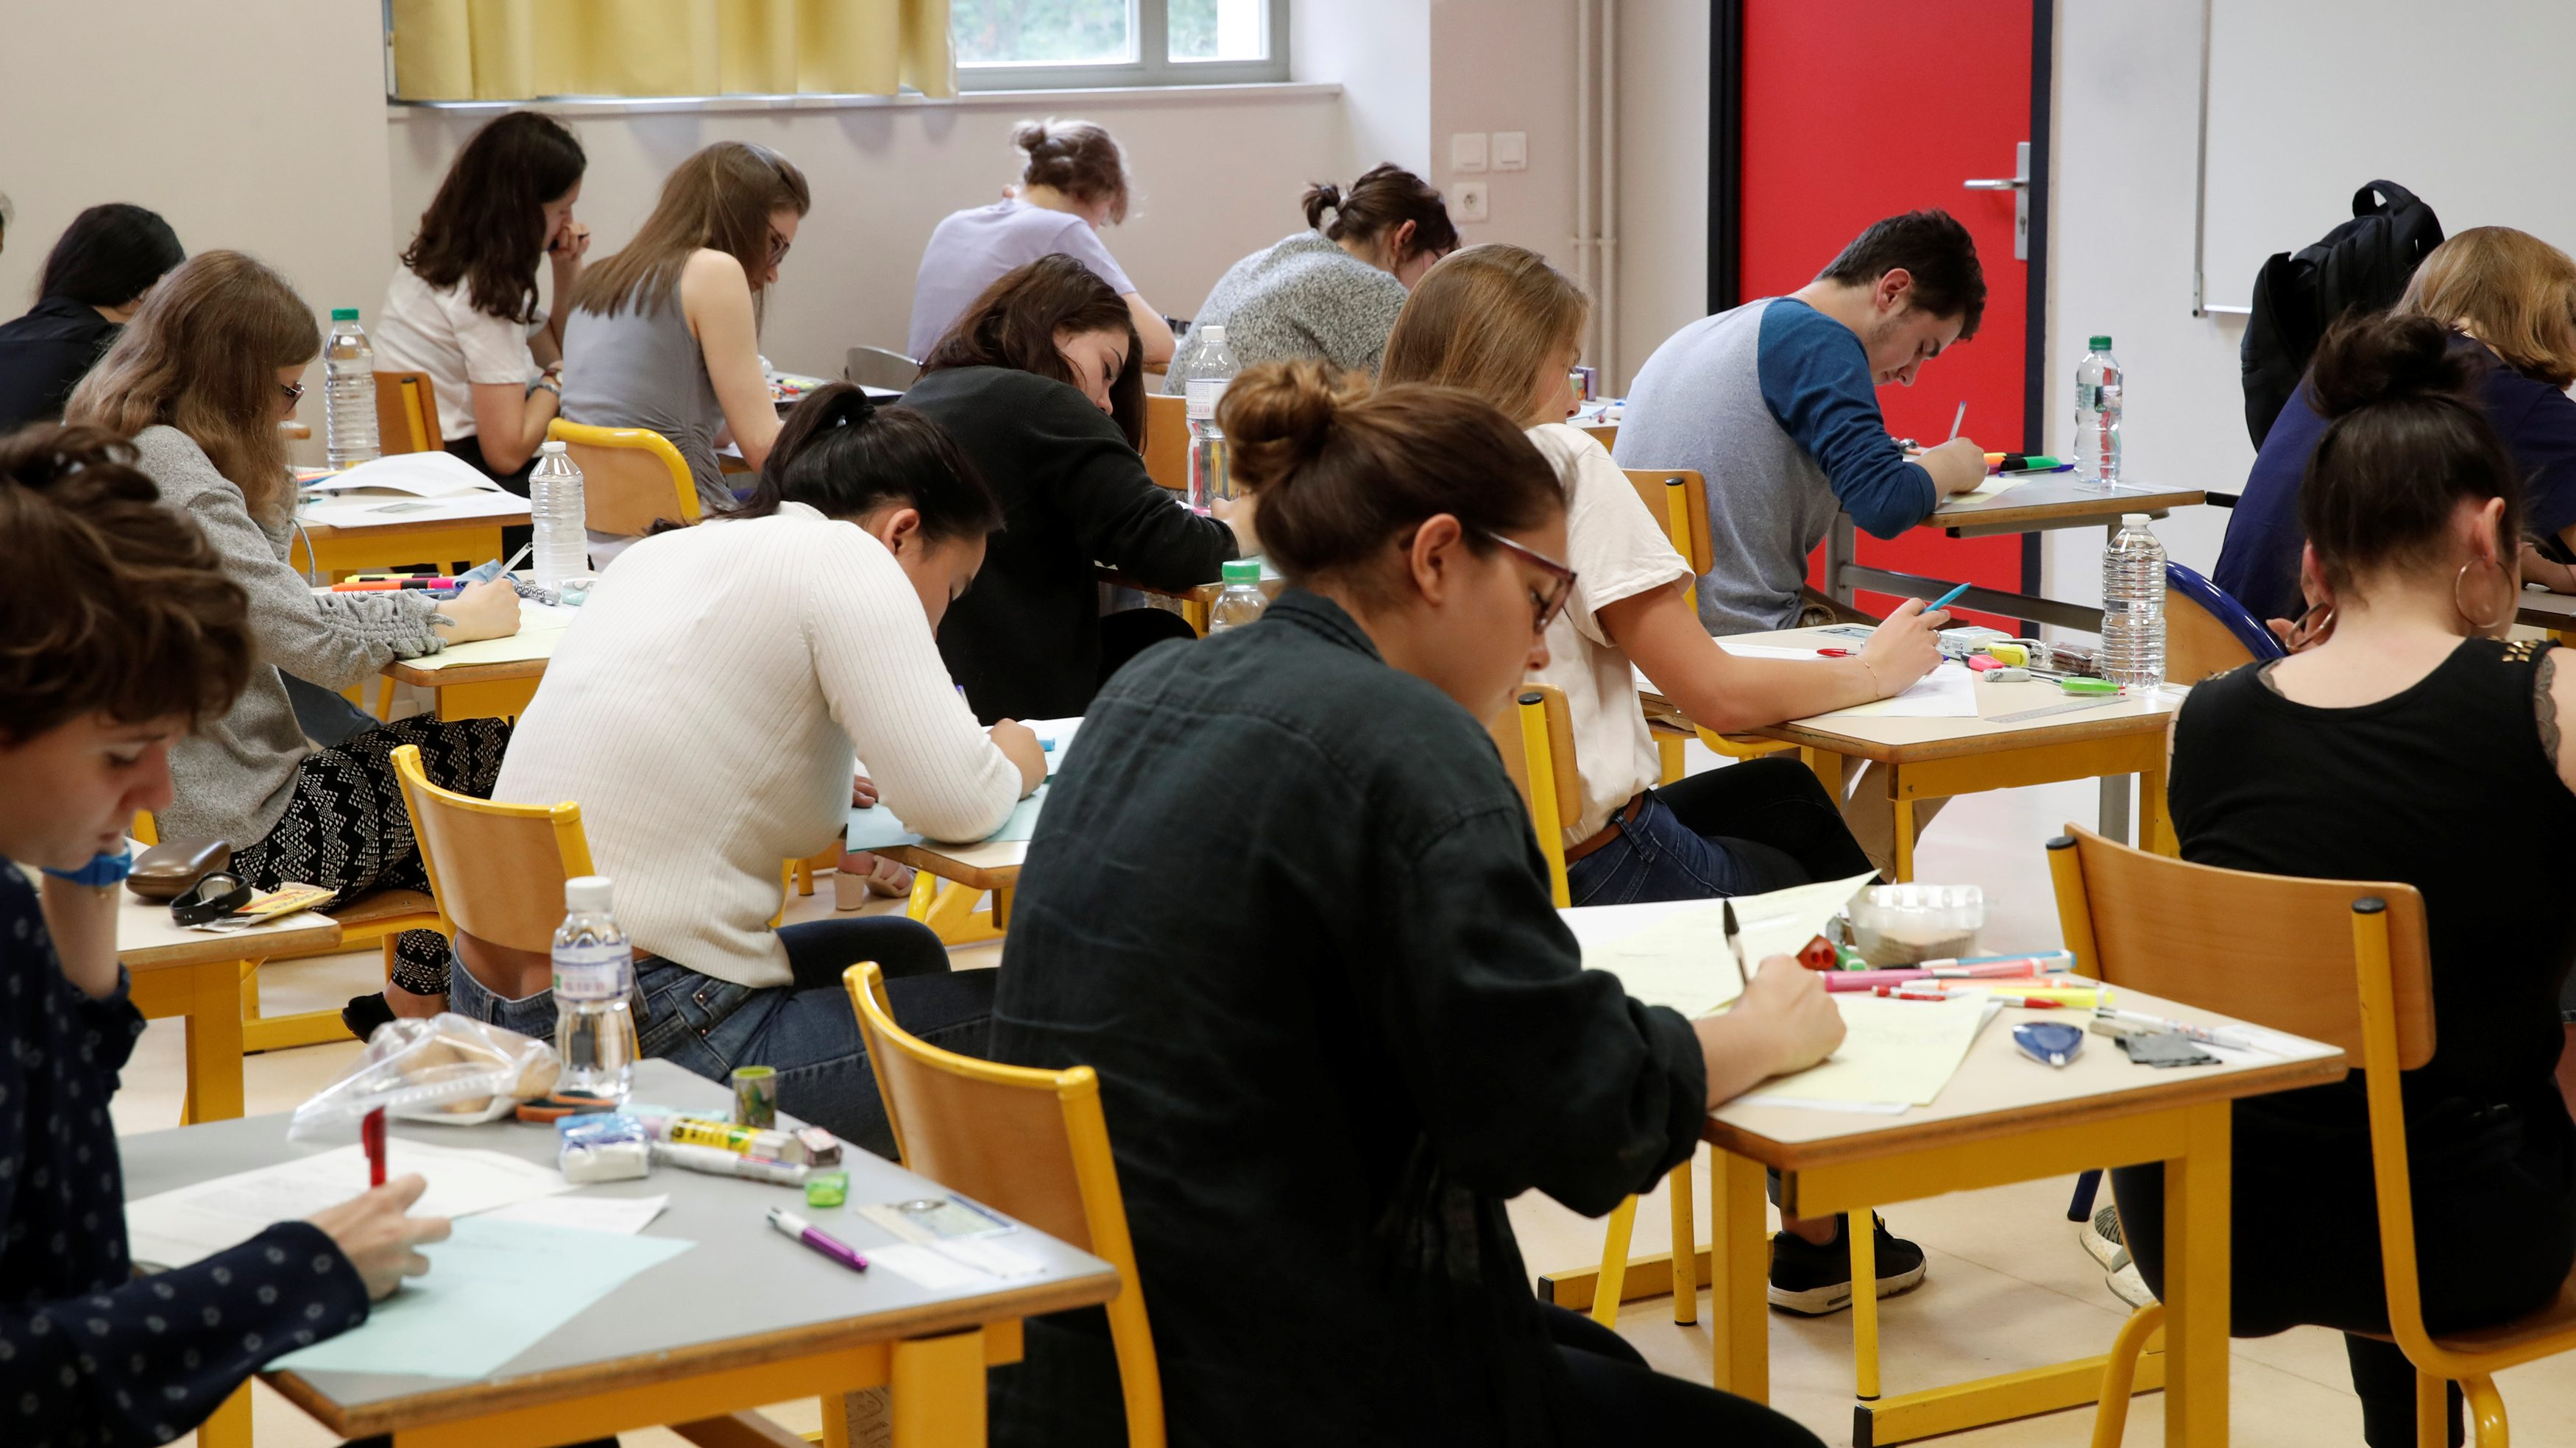 High school students start working on a 4 hours philosophy dissertation, that kicks off the French general baccalaureat exam at the lycee La Bruyere in Versailles